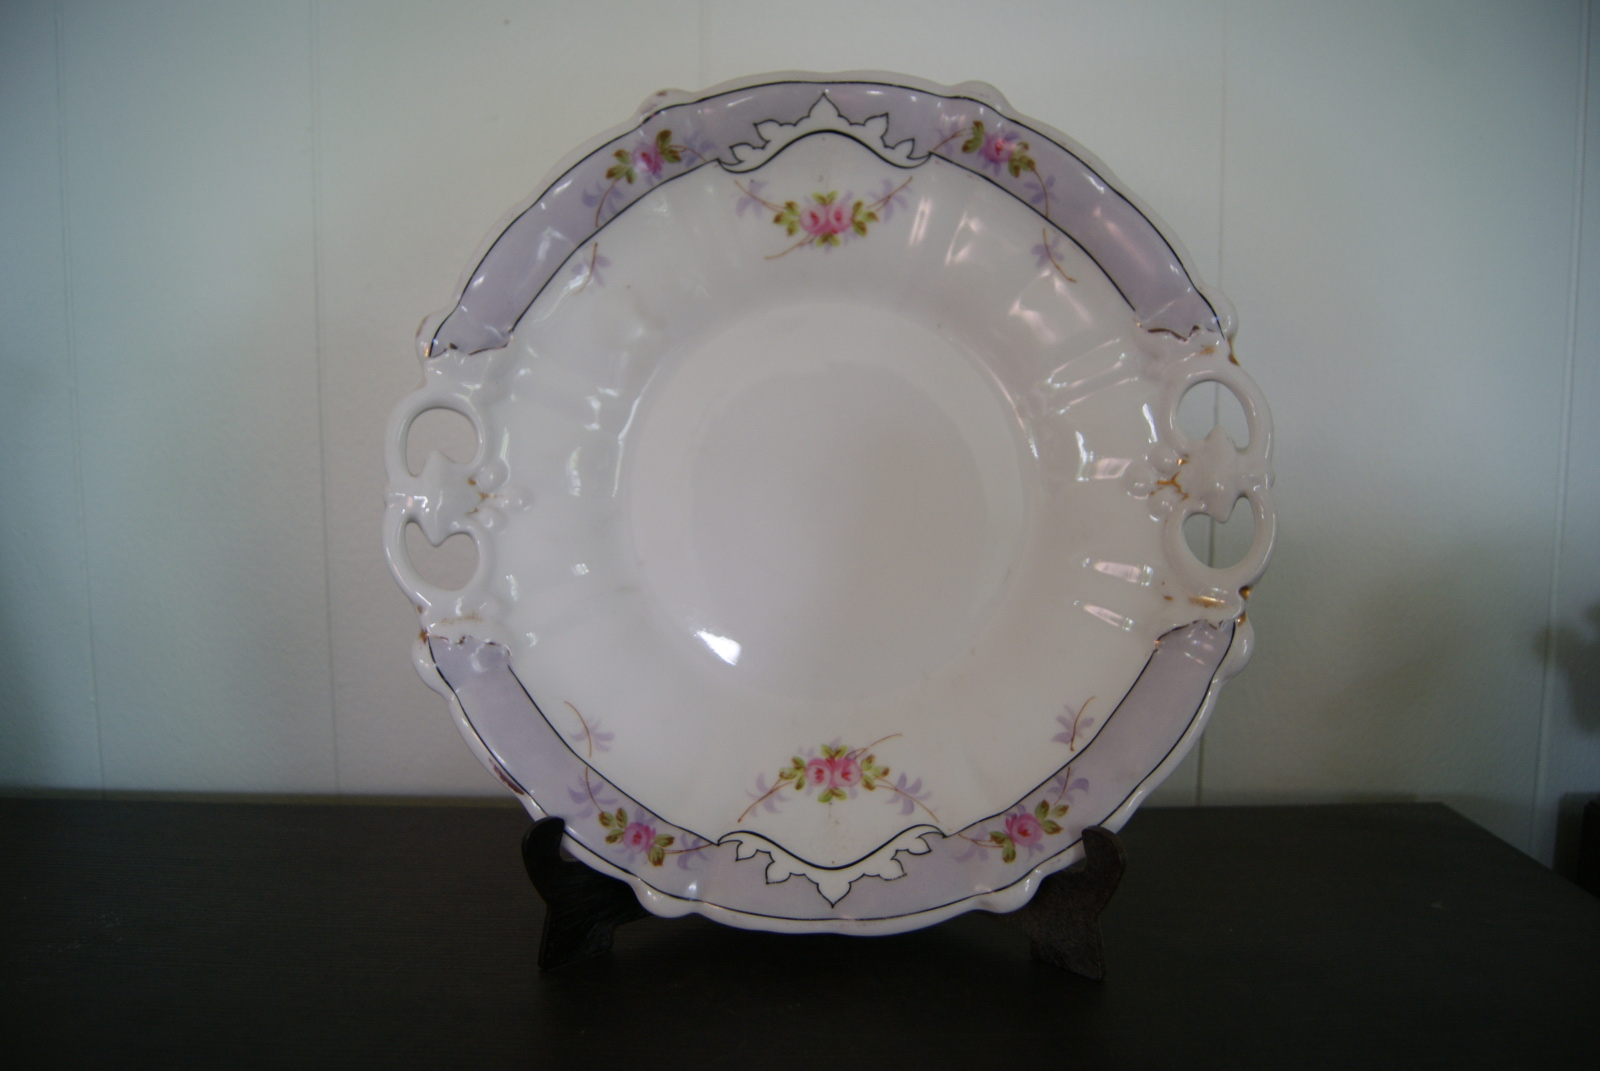 Waldenburg - Altwasser dish (plate) with flowers and blue band